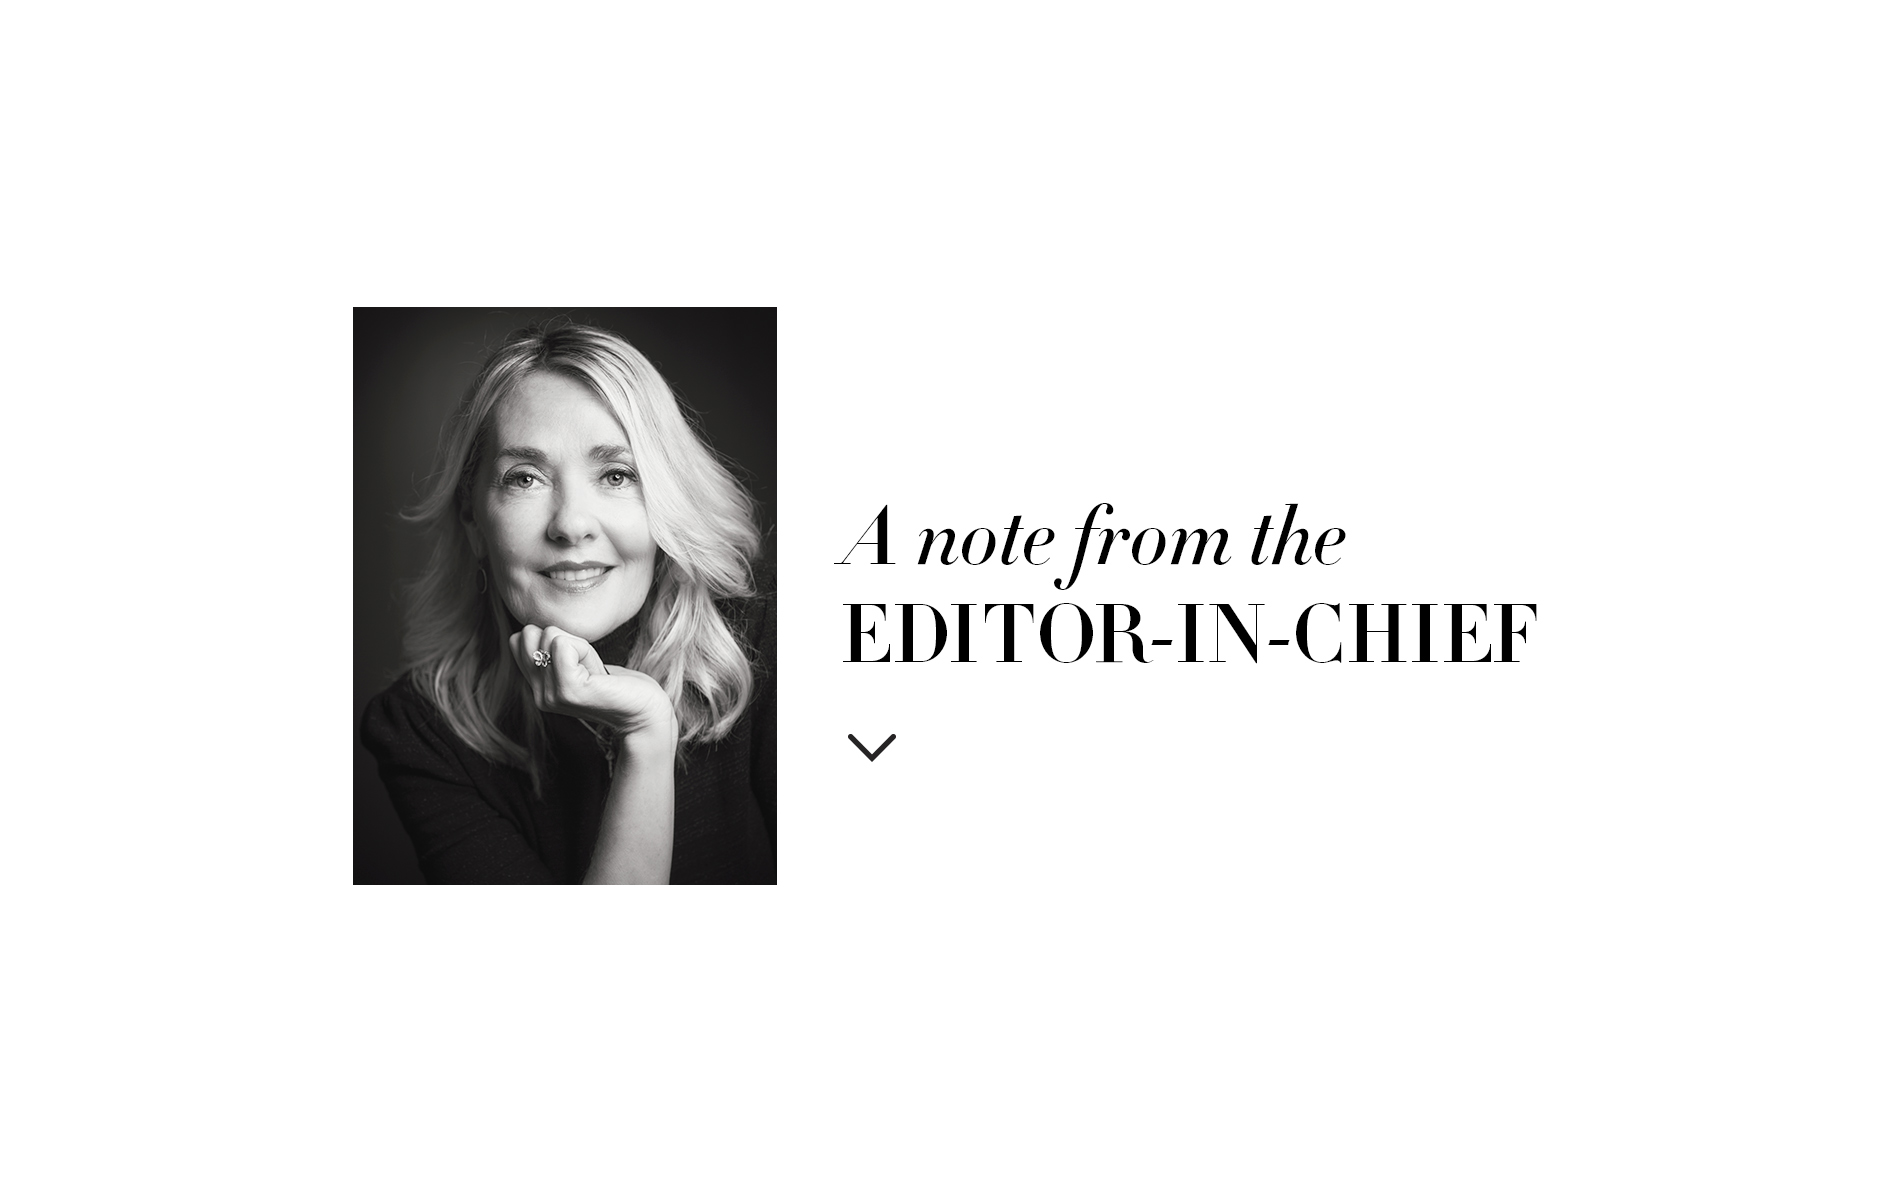 Lisa Burwell, Editor in Chief and Publisher, VIE Magazine